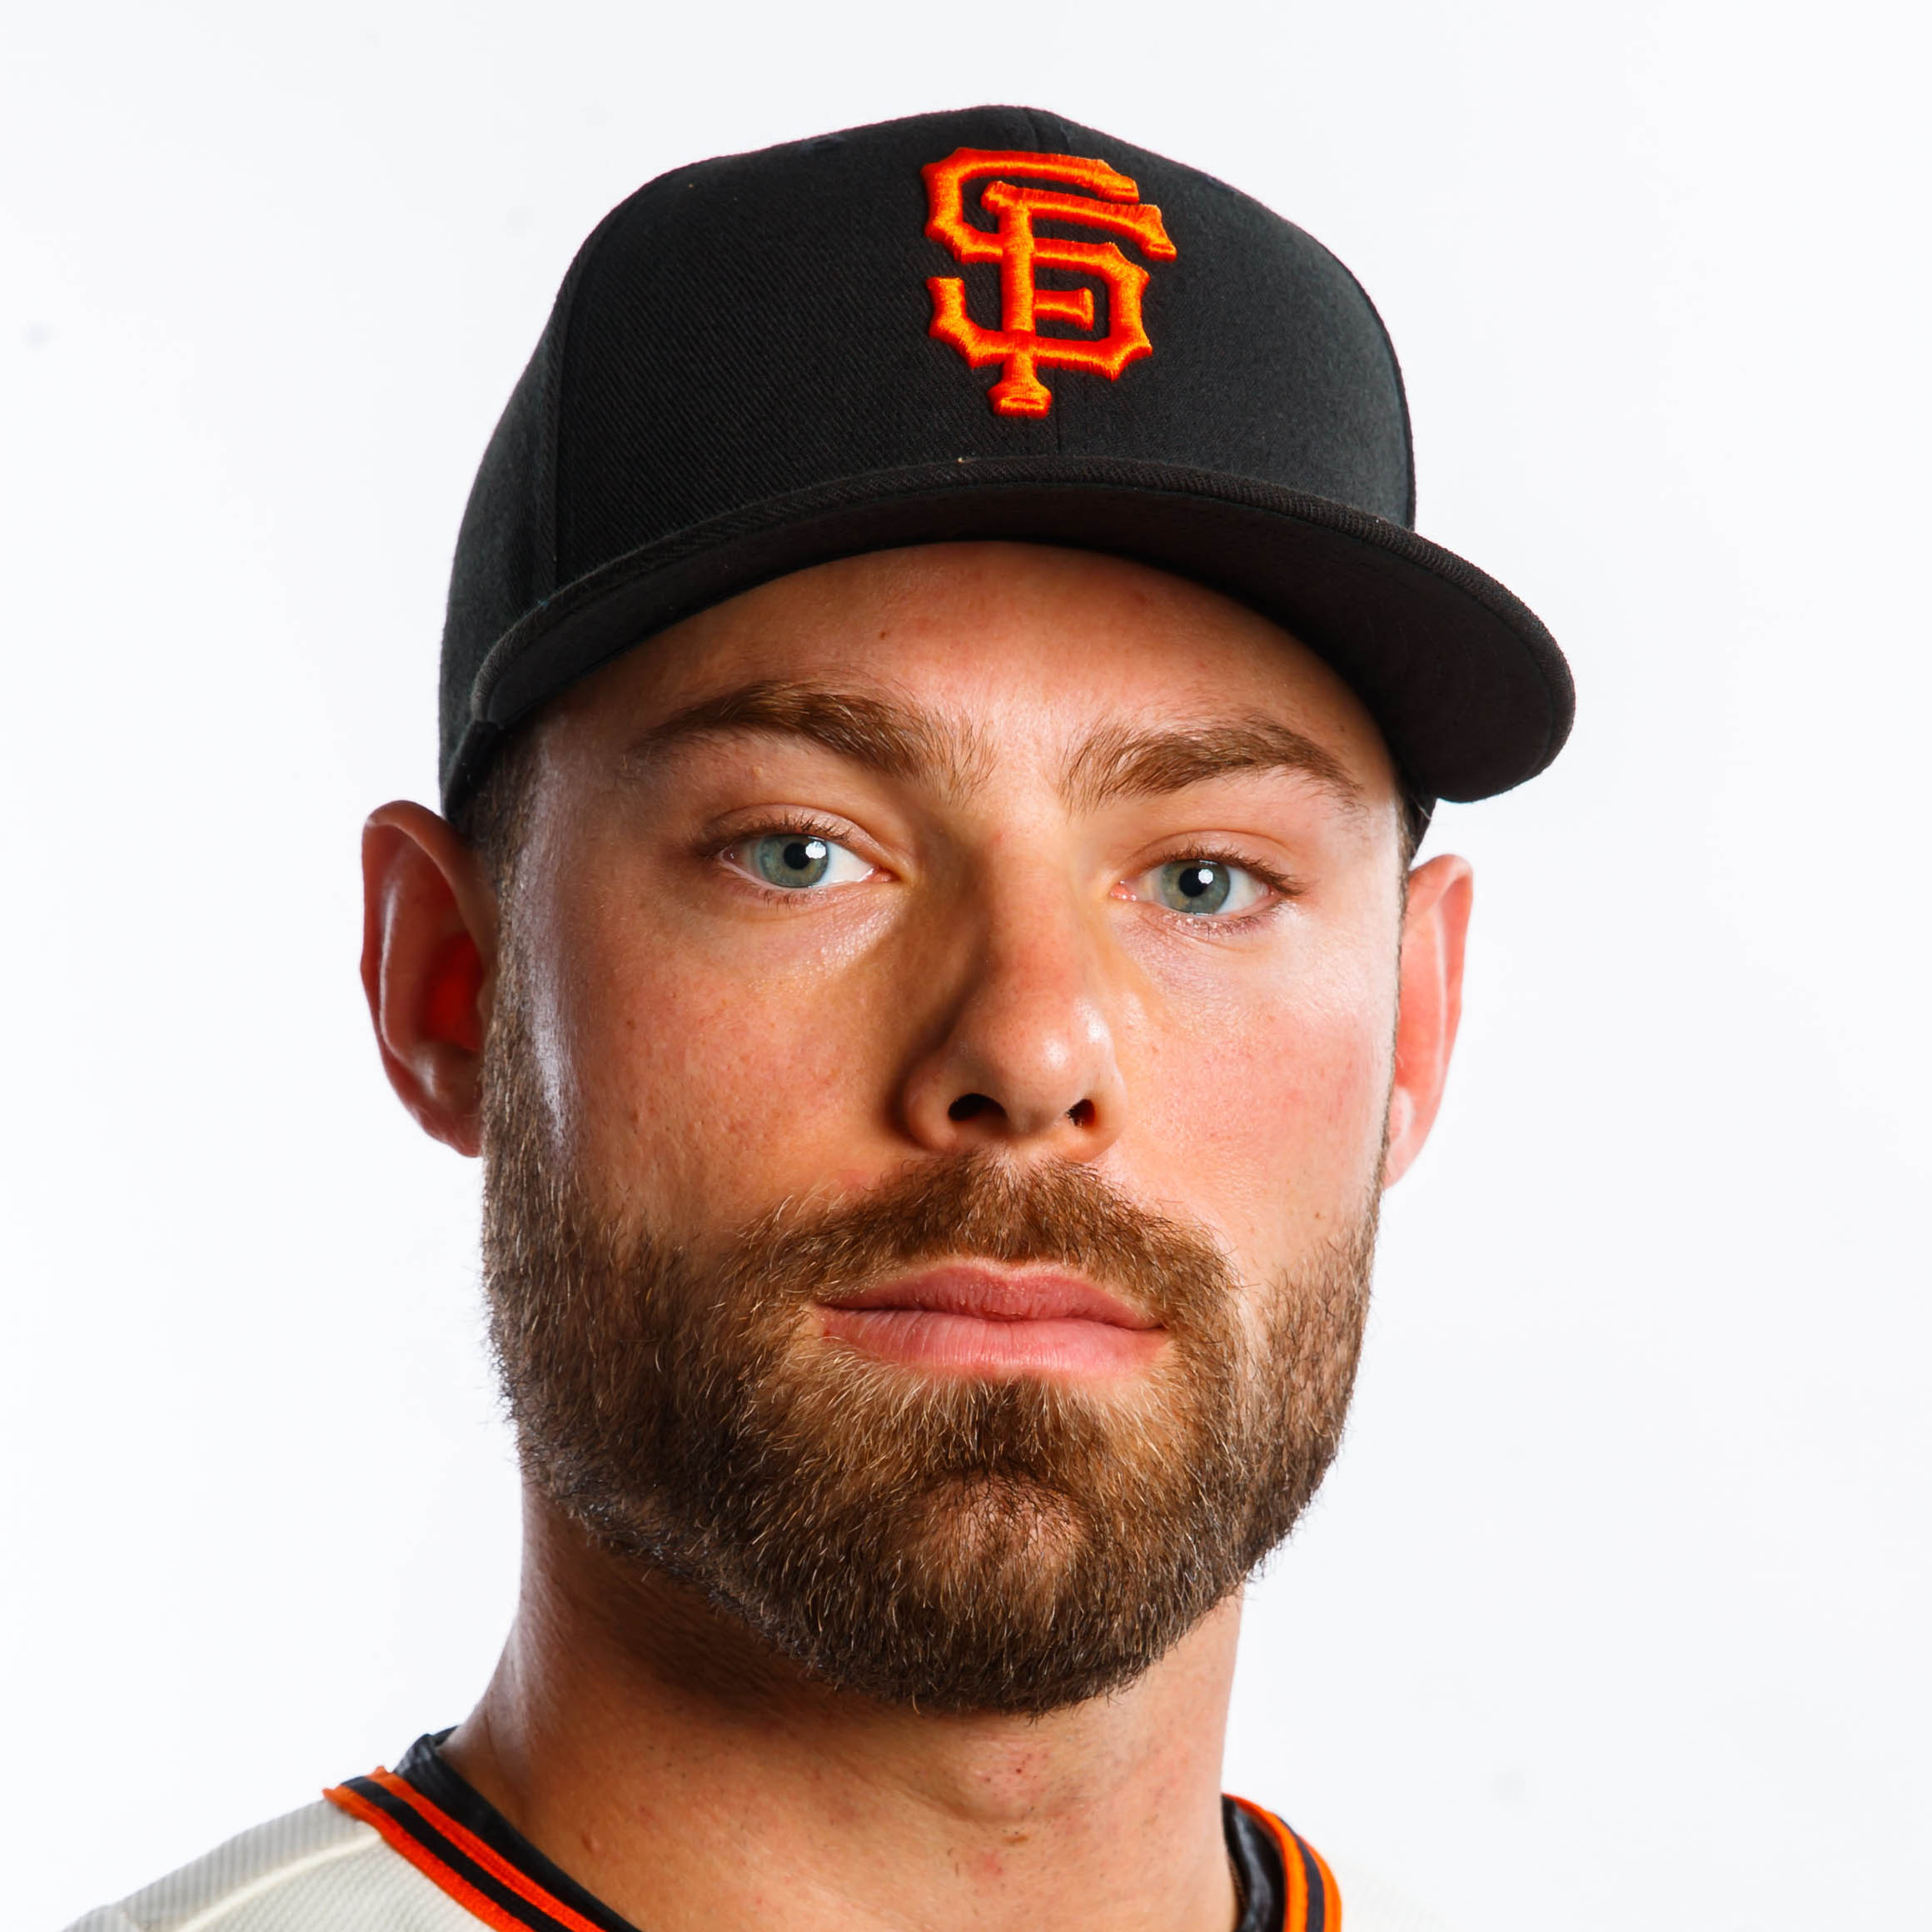 Mac Williamson (R) Headshot